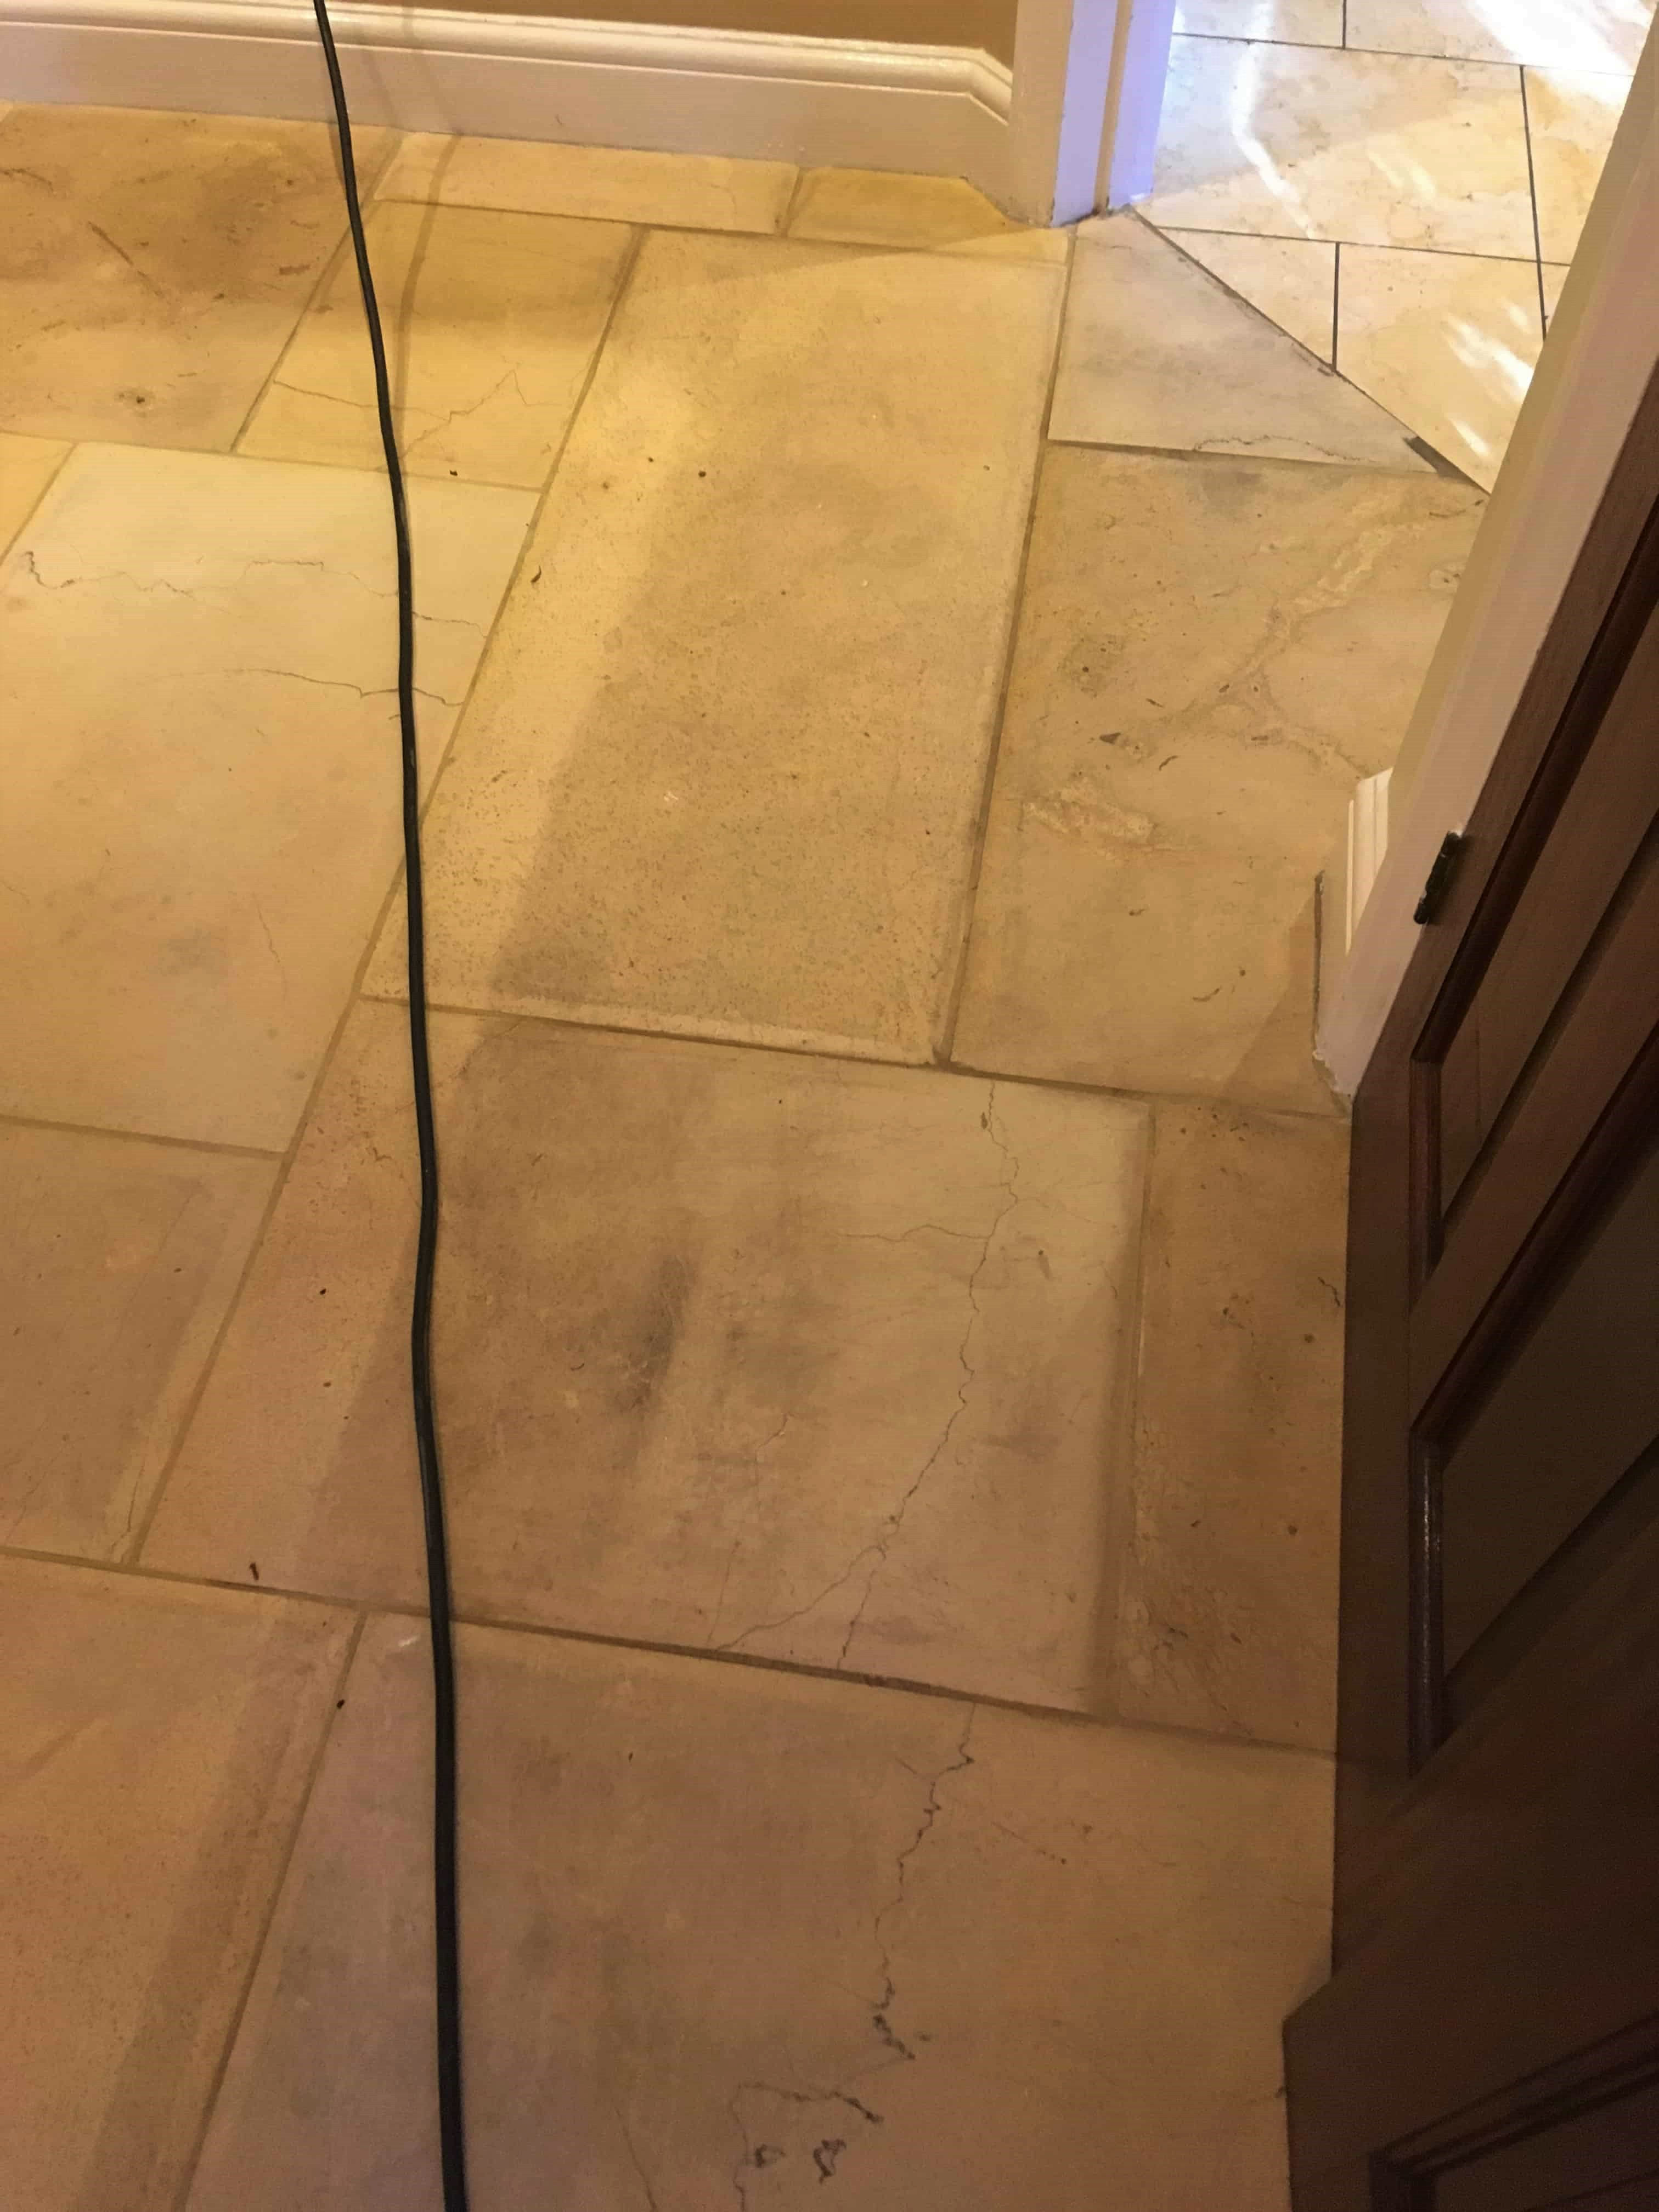 Limestone Tiled Hallway Before Cleaning Twickenham